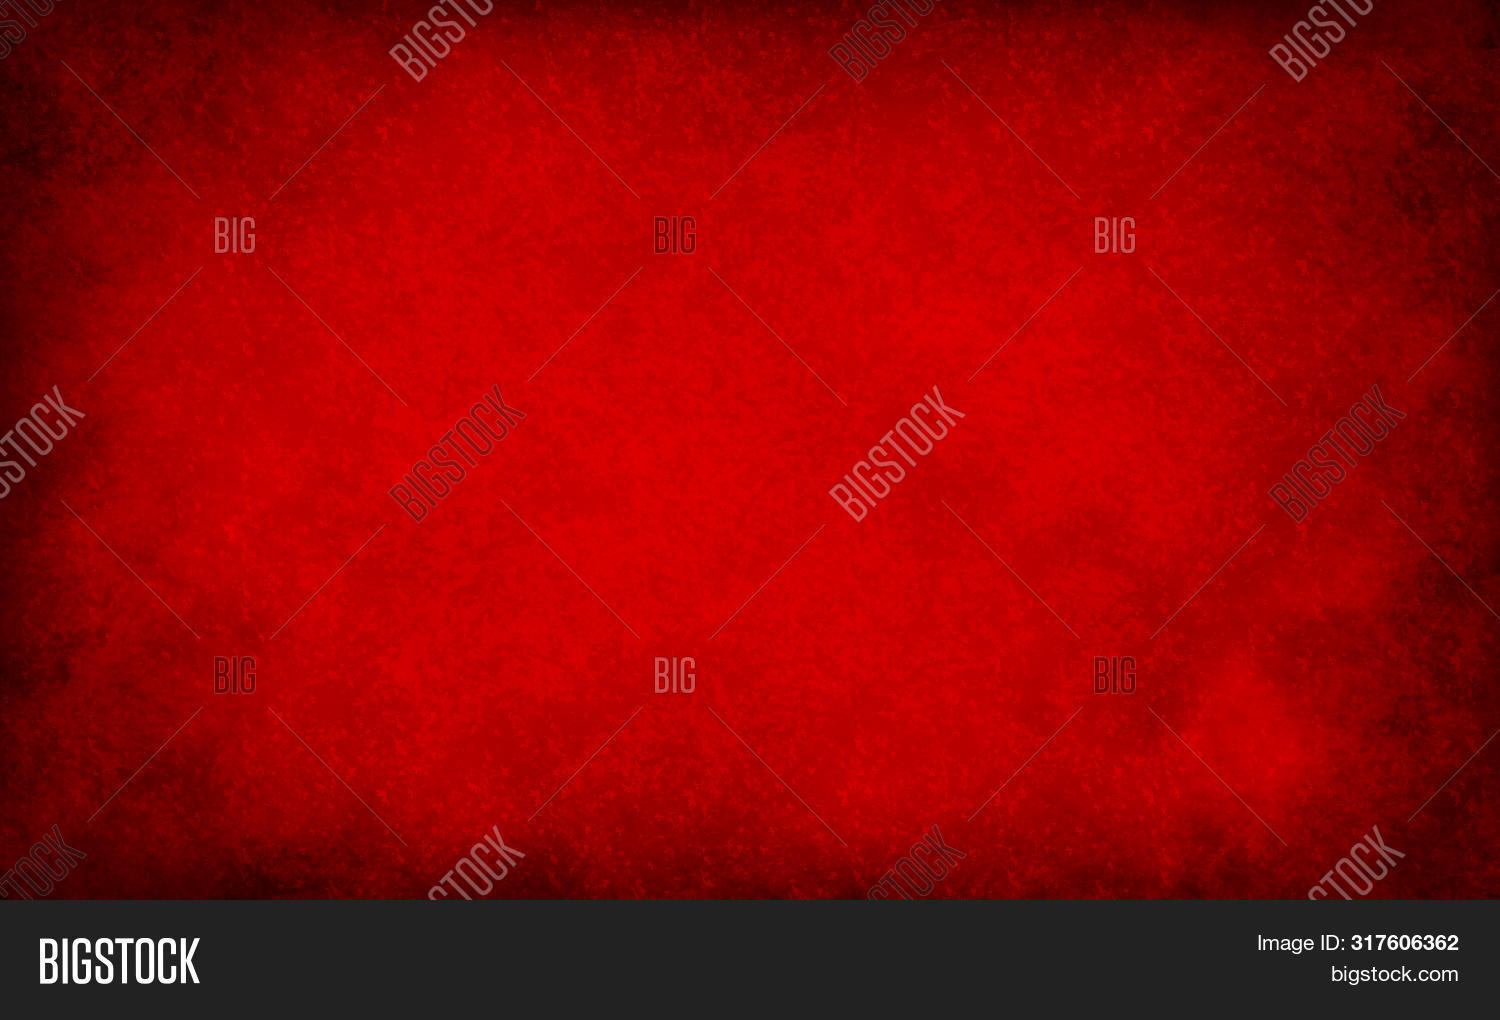 Abstract,Christmas,Day,Fine,Valentine's,Wallpaper,ancient,antique,art,background,bright,color,dark,decorative,design,divorces,elegant,grunge,old,paper,parchment,pattern,poster,red,retro,spots,texture,vintage,wall,wedding